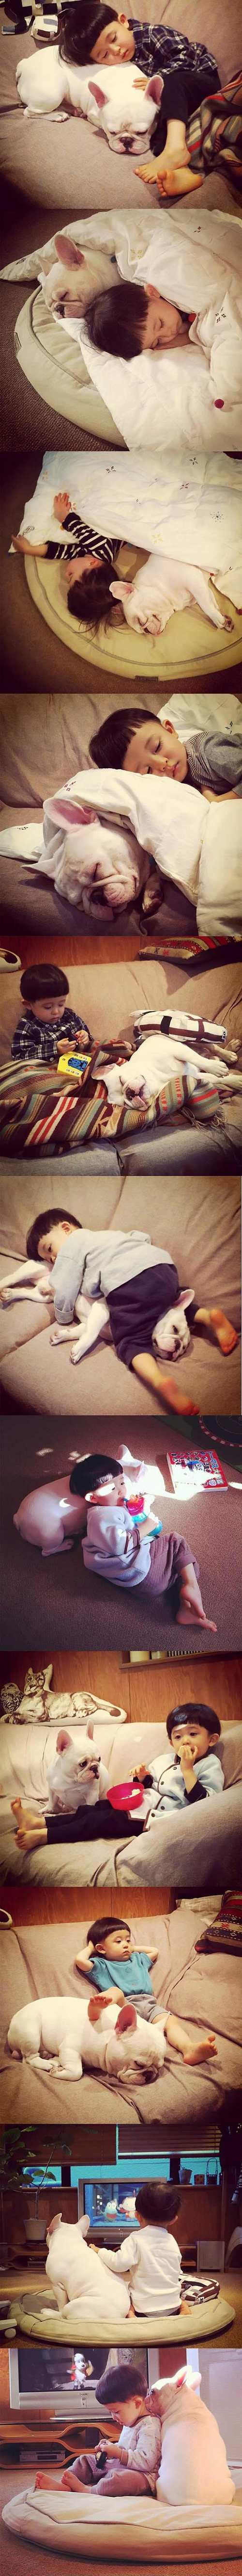 A Beautiful Friendship Between a Kid and is French Bulldog